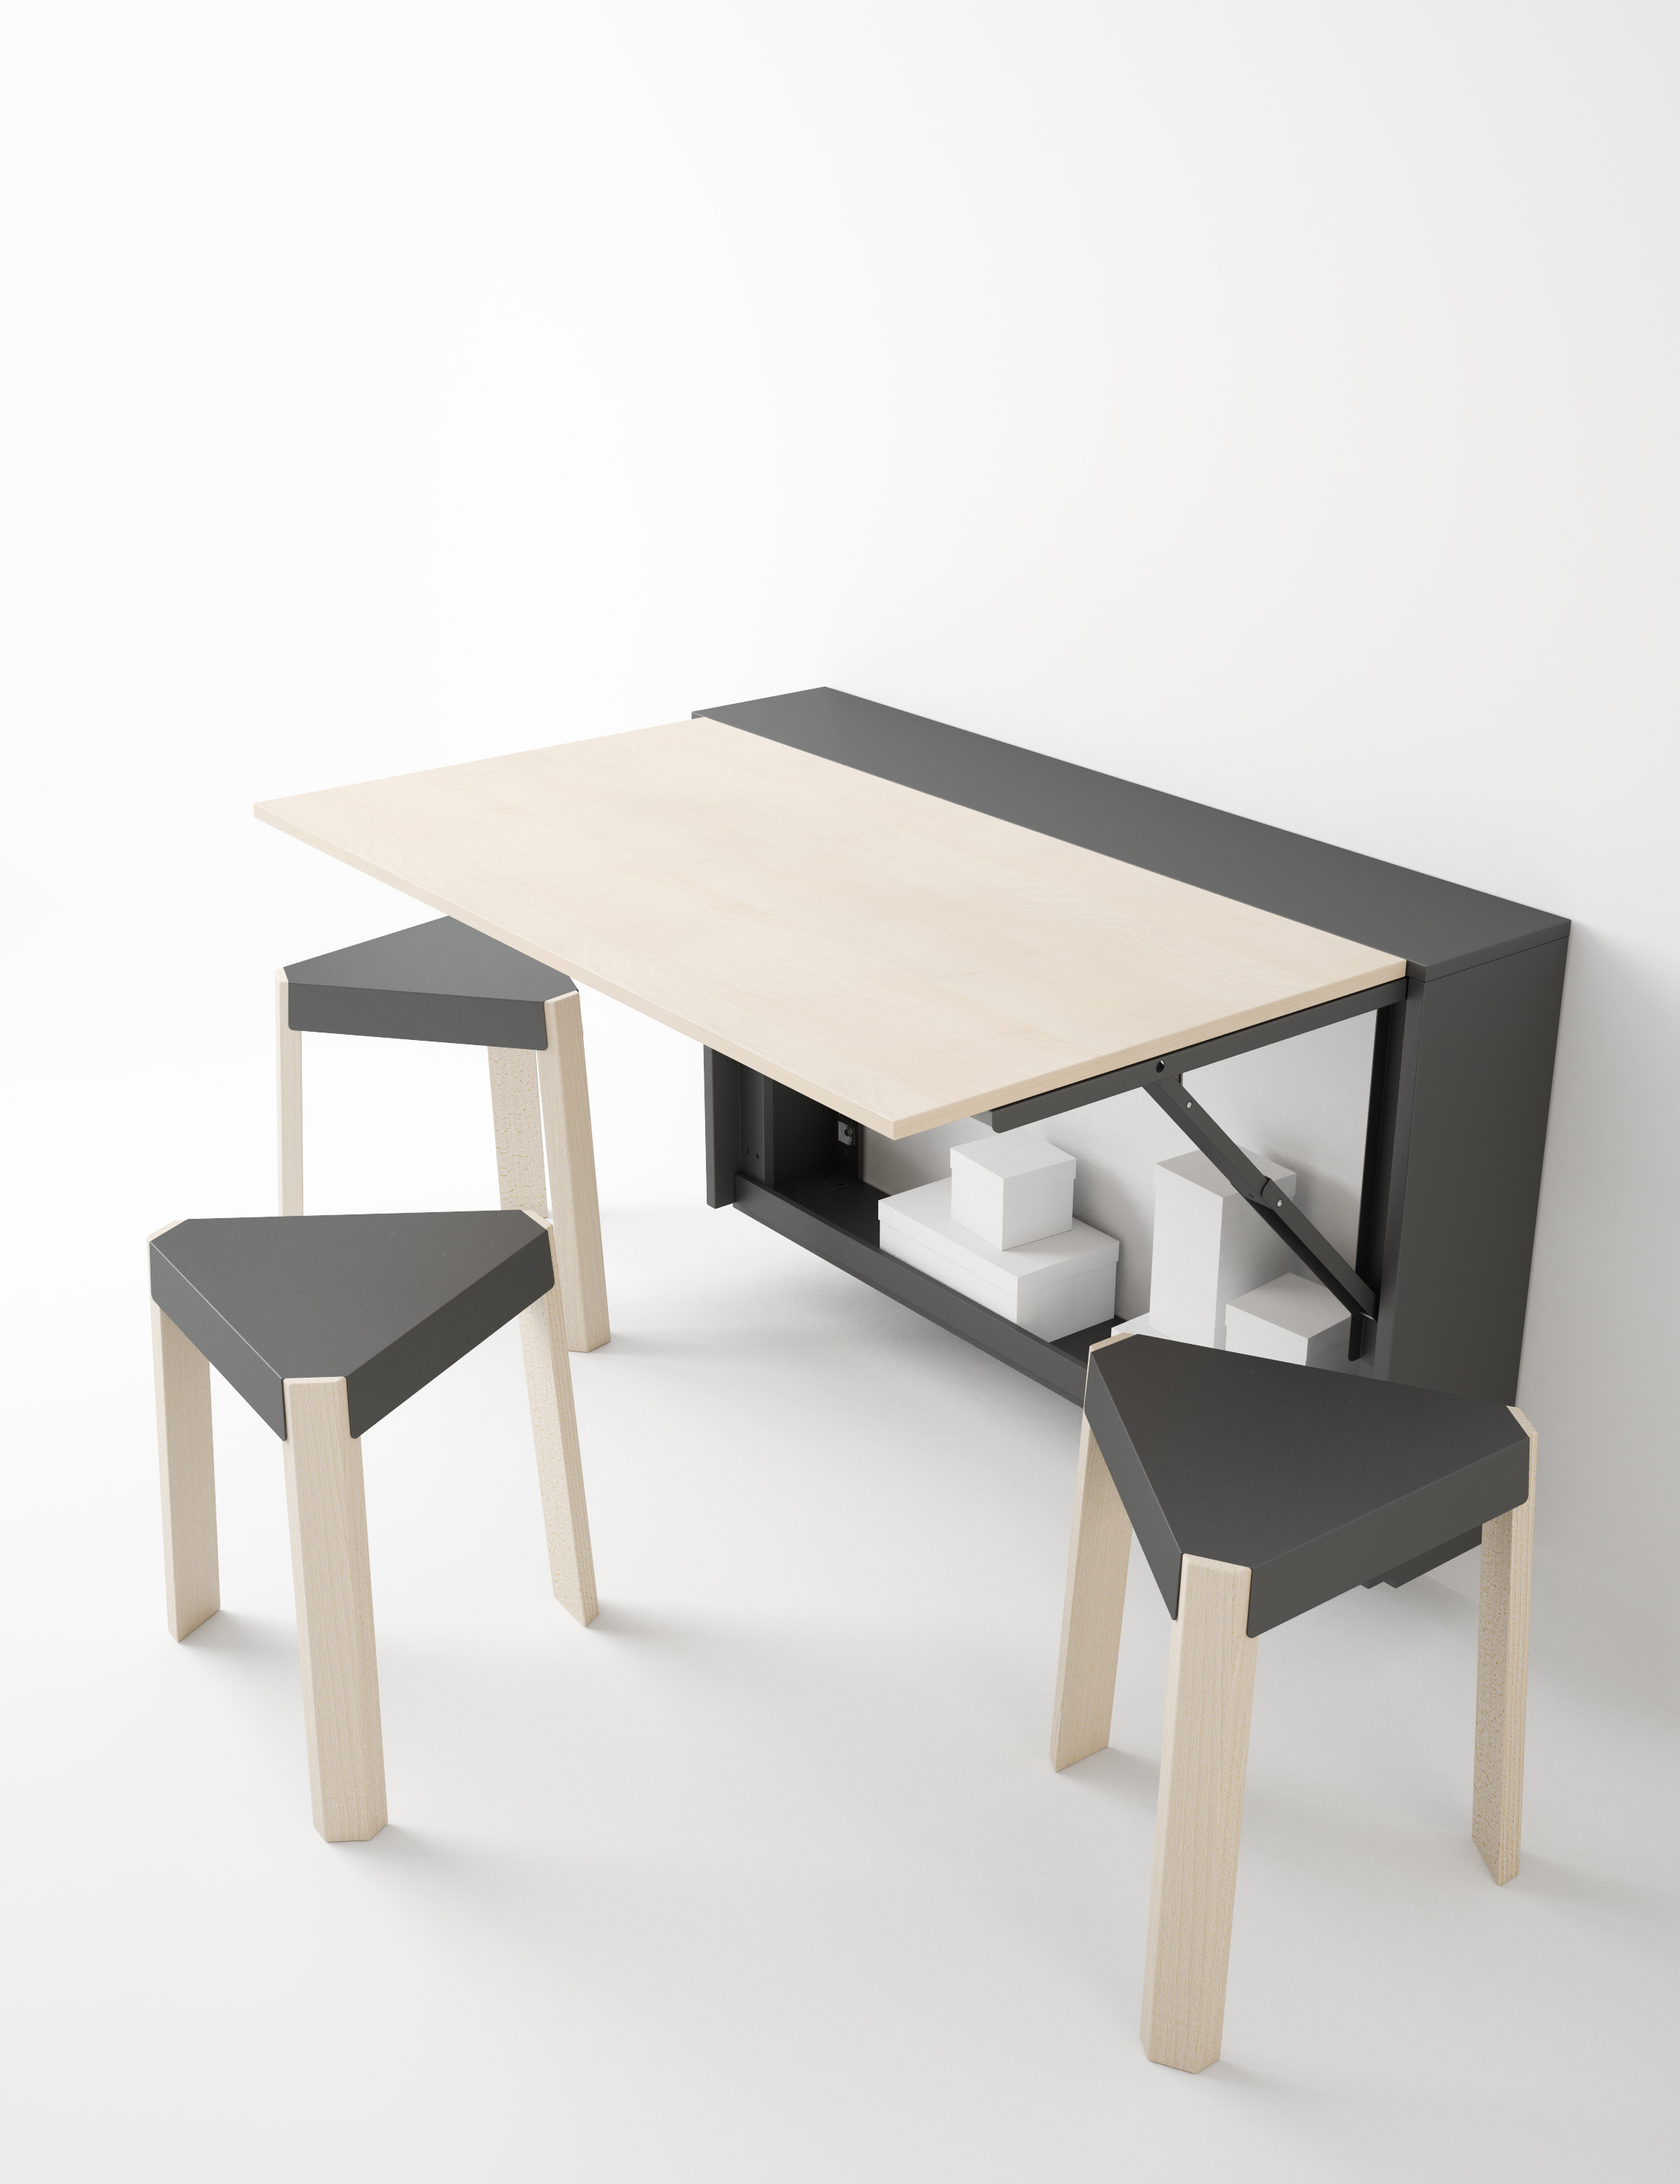 - BLOCK Folding Table Furniture From Spain